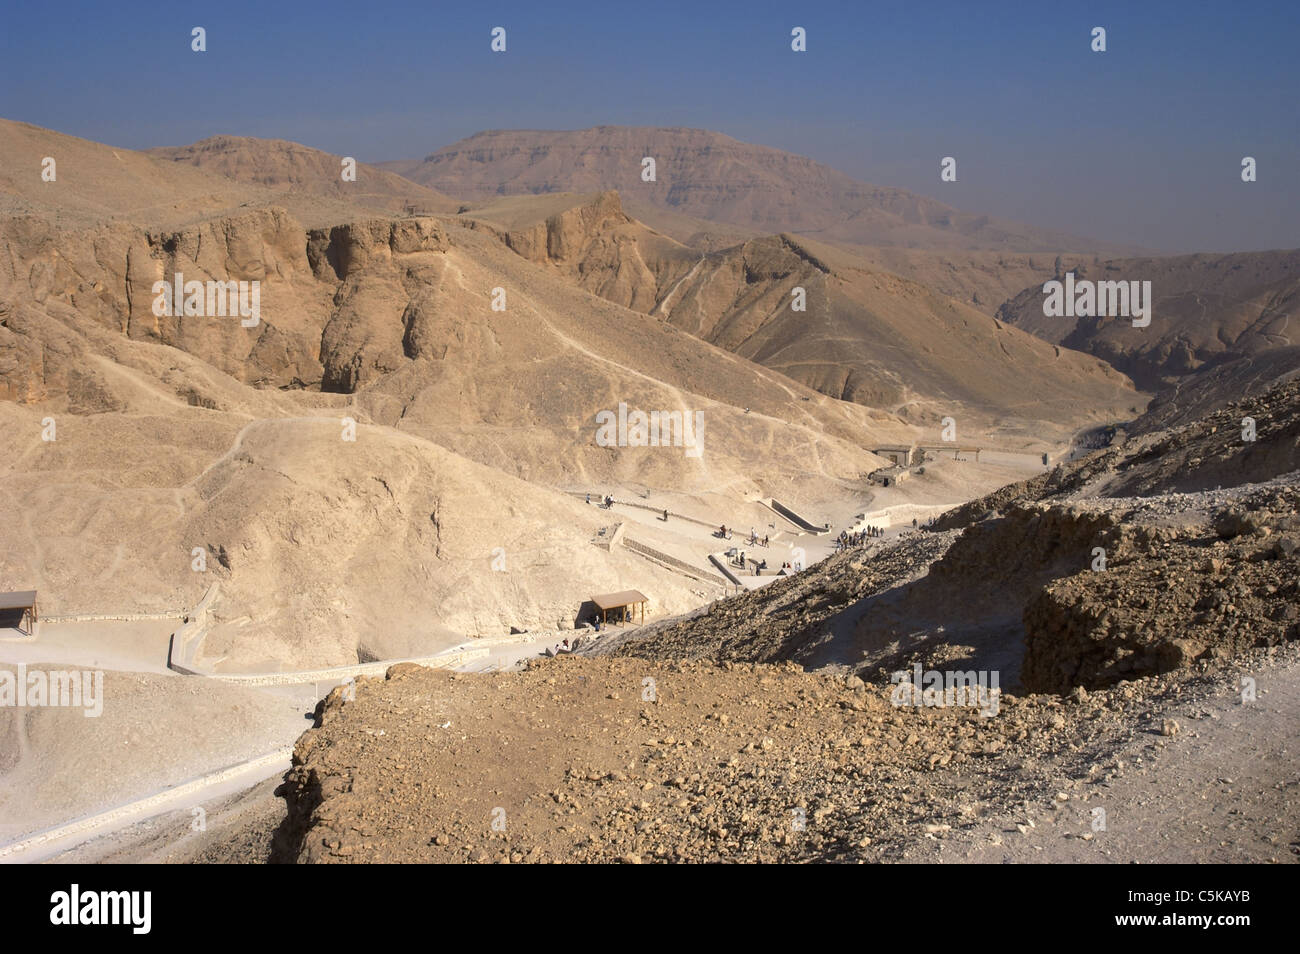 Egypt. Valley of the Kings. New Kingdom. Scenery. - Stock Image